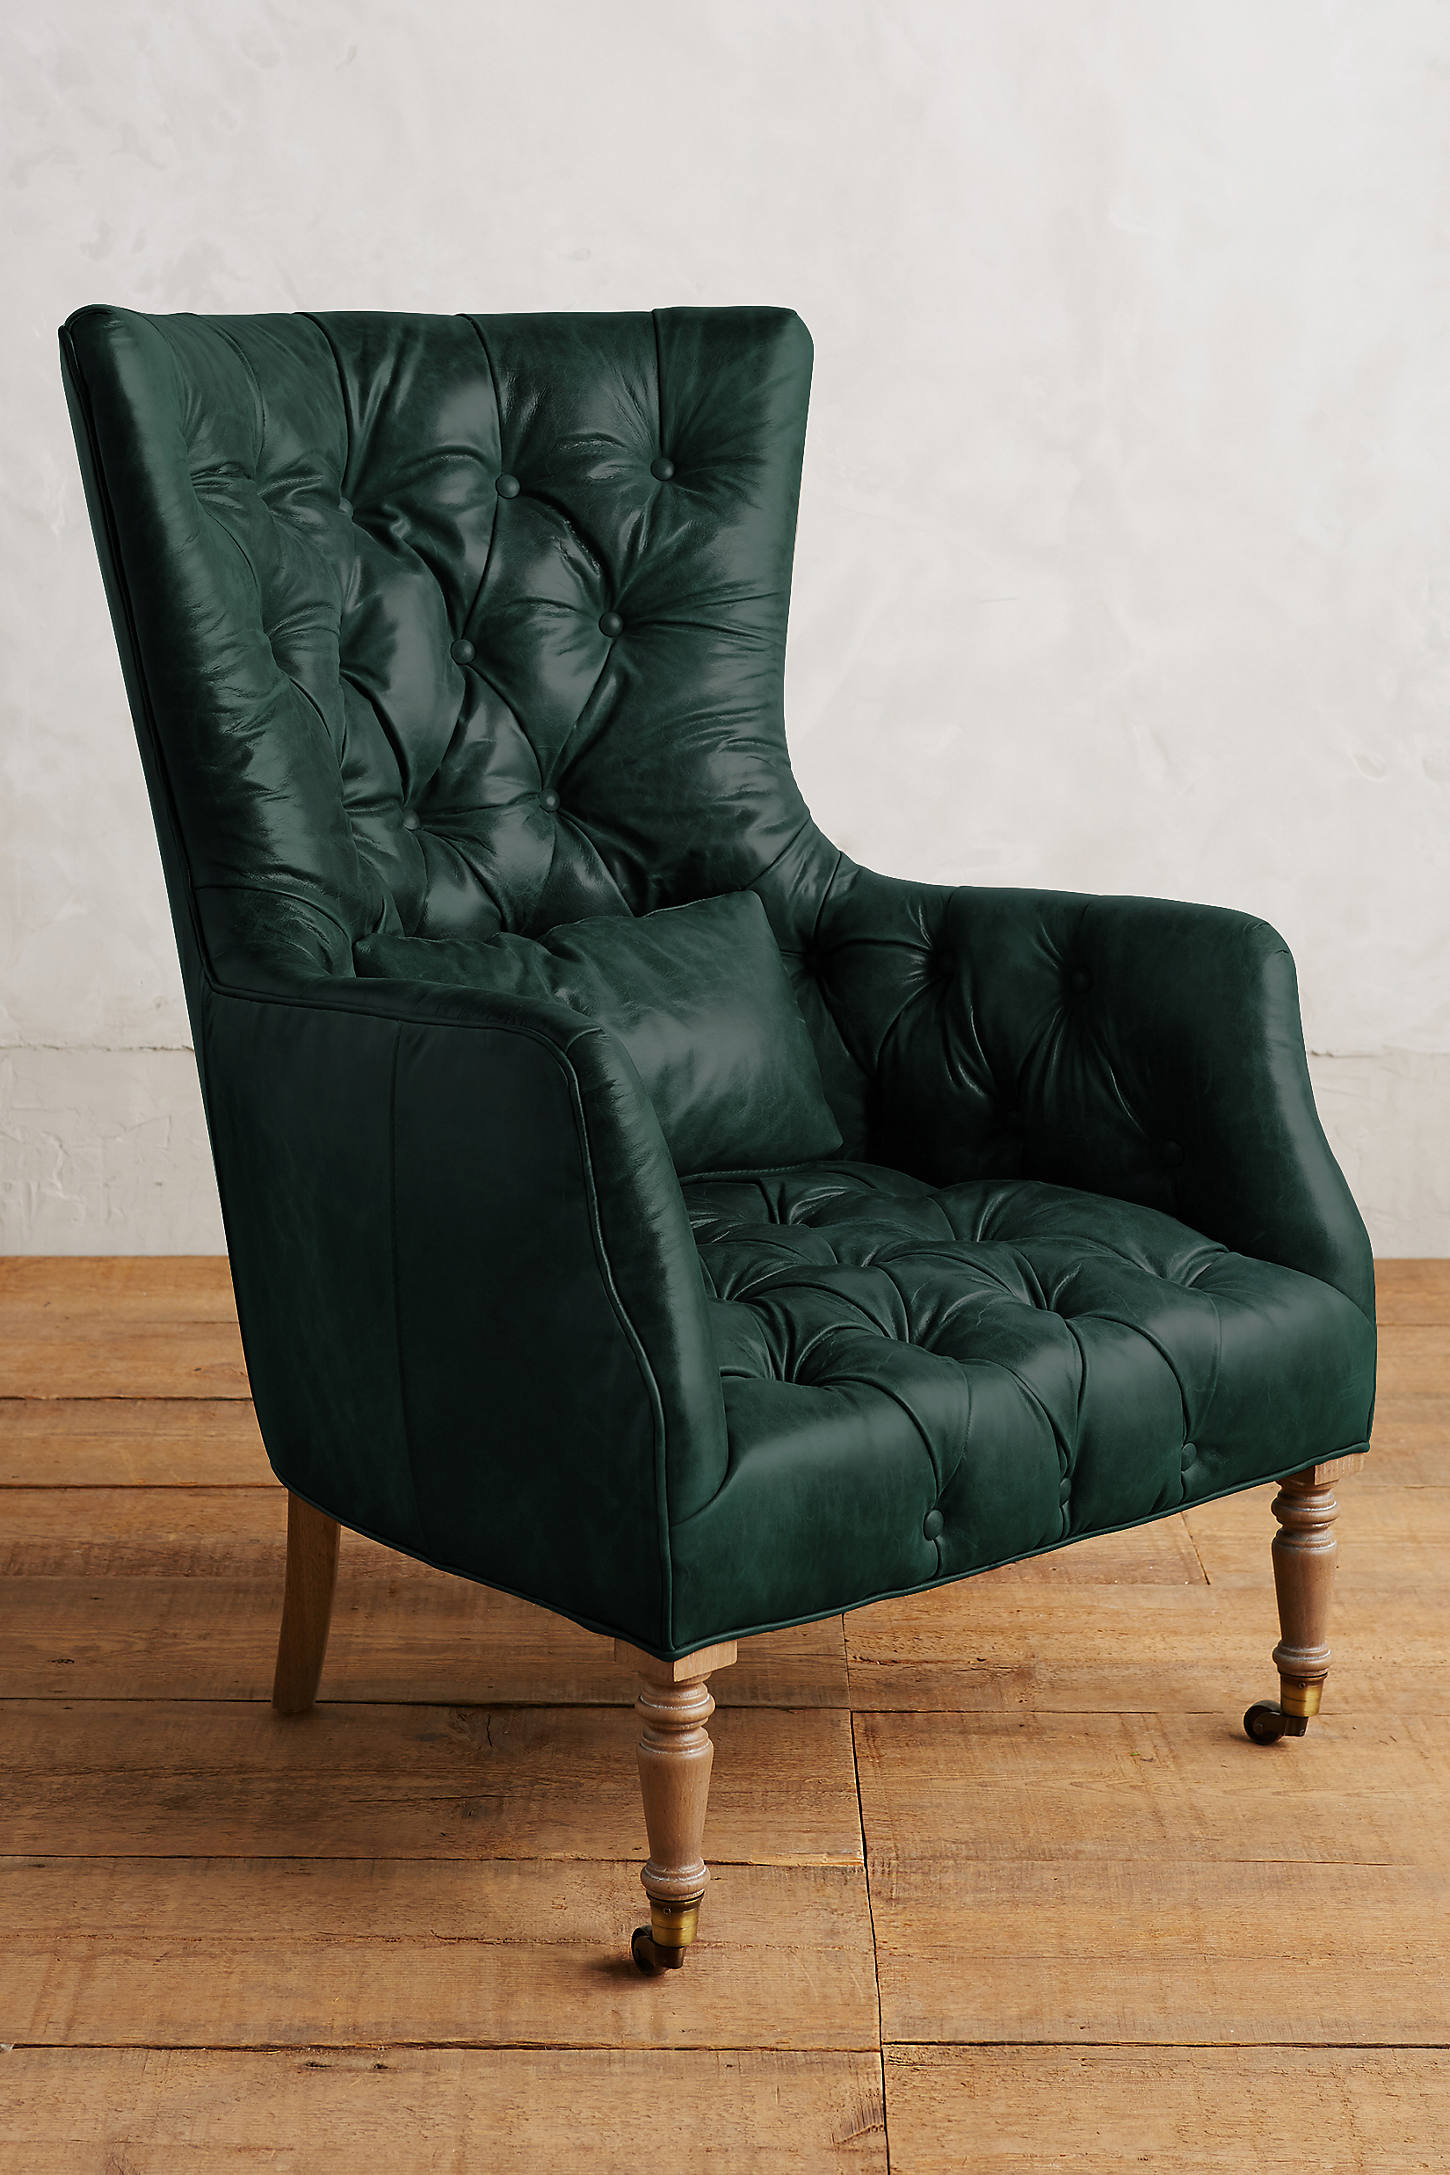 Leather Tufted Julienne Chair